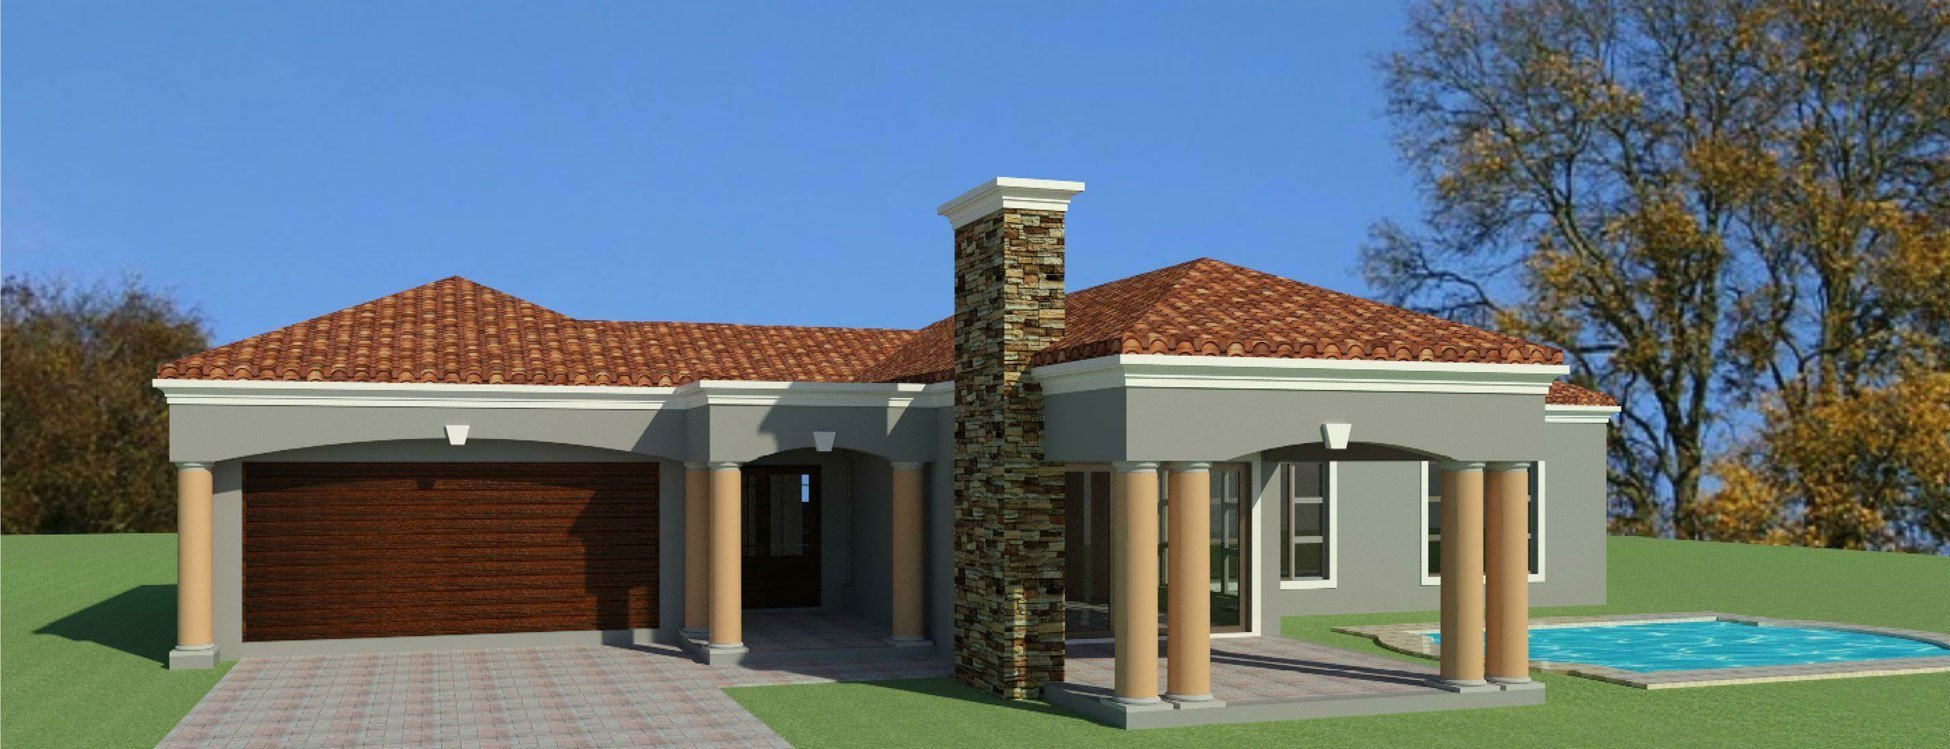 Best 3 Bedroom House Plan For Sale South African Designs With Pictures